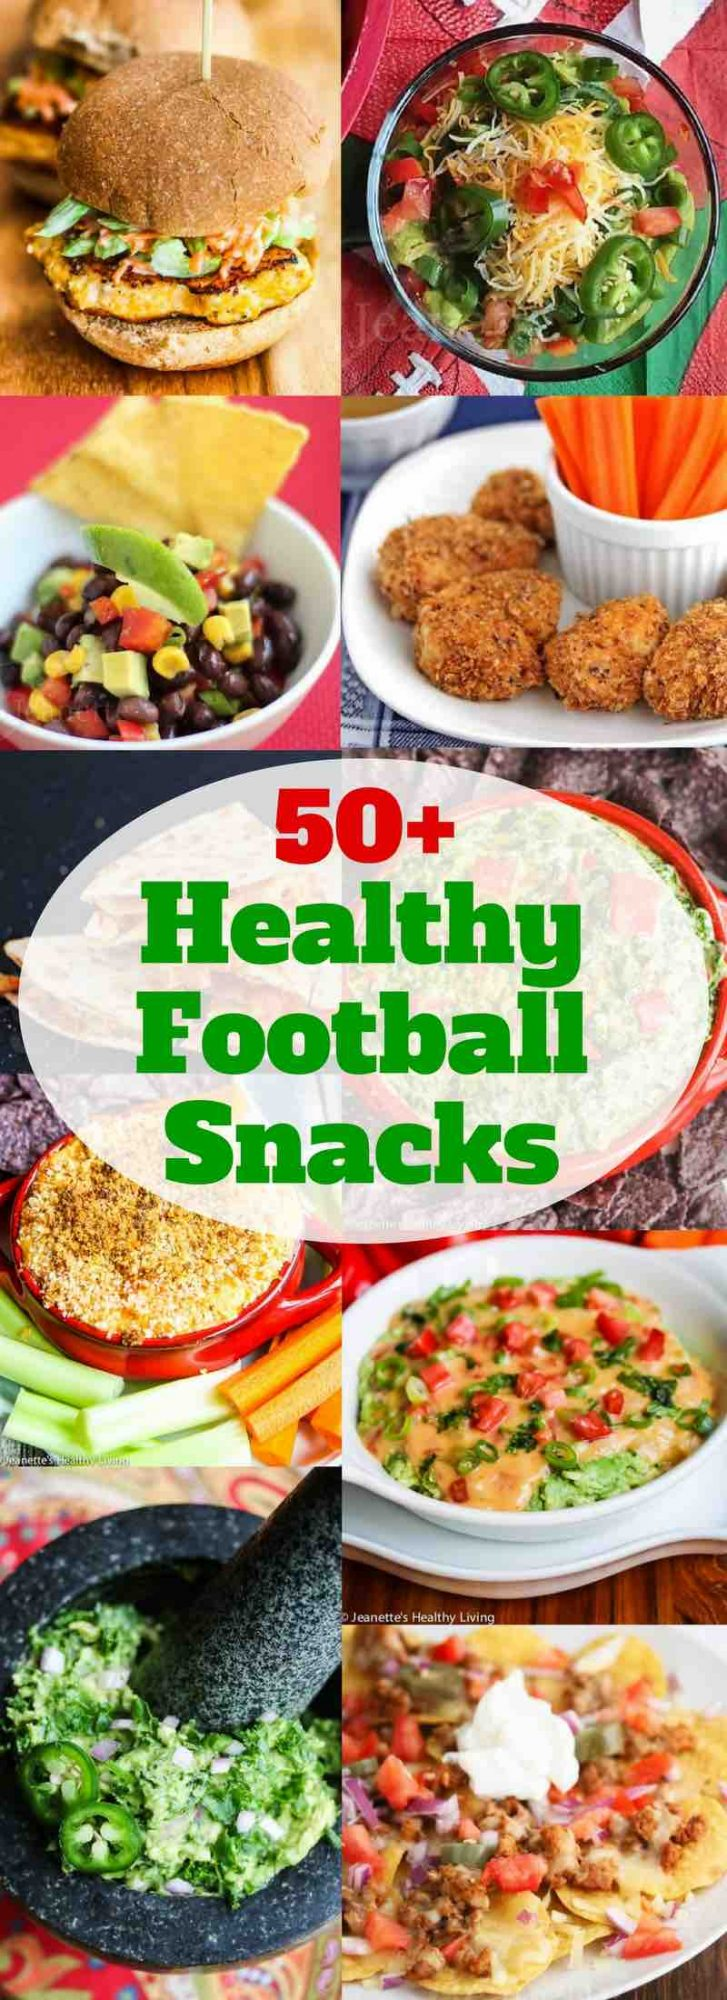 50+ Healthy Football Snacks - lightened up versions of favorite game day eats